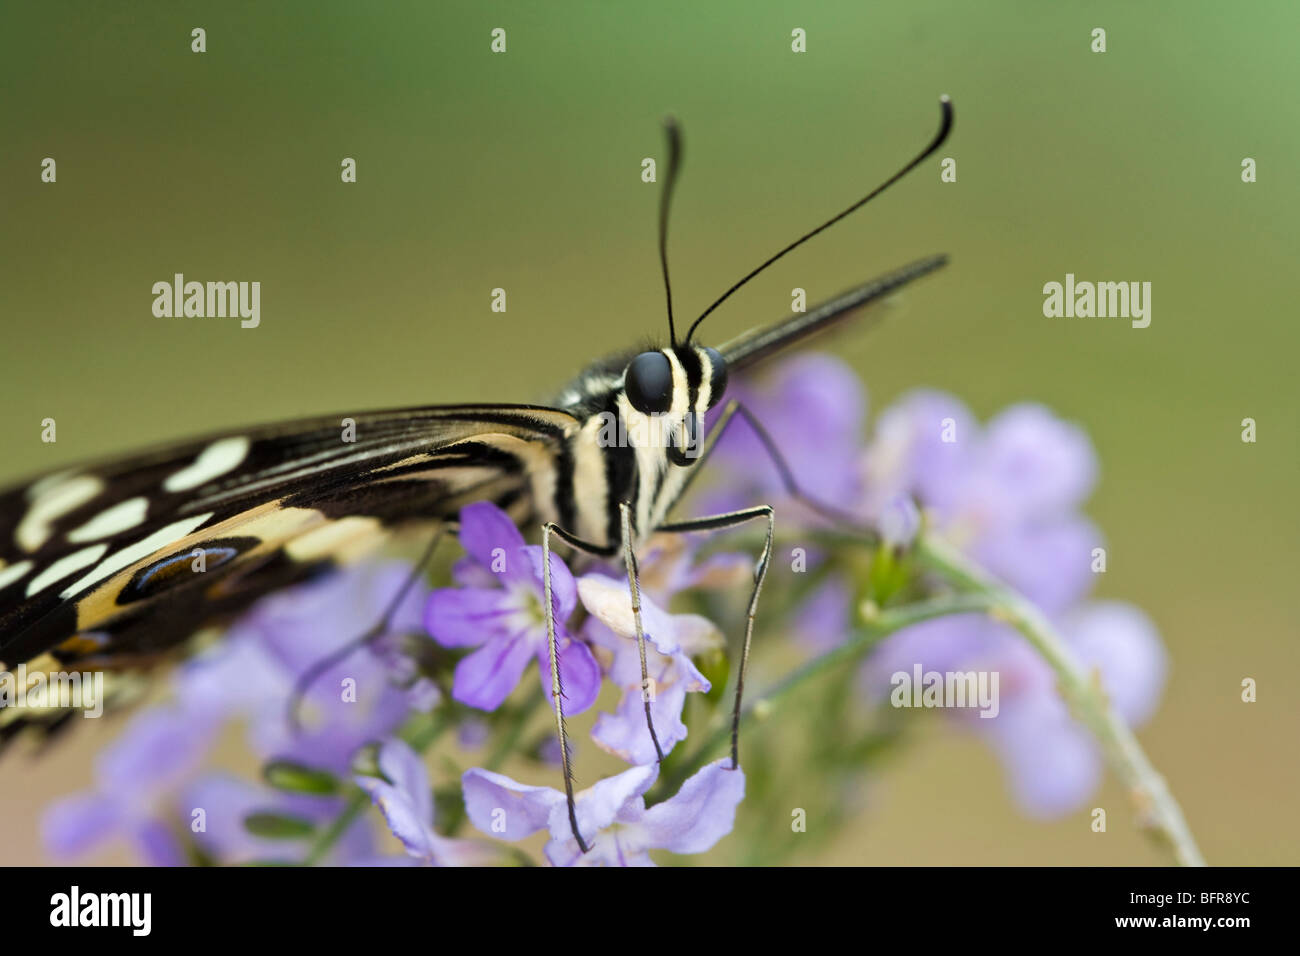 Butterfly on a lilac flower - Stock Image